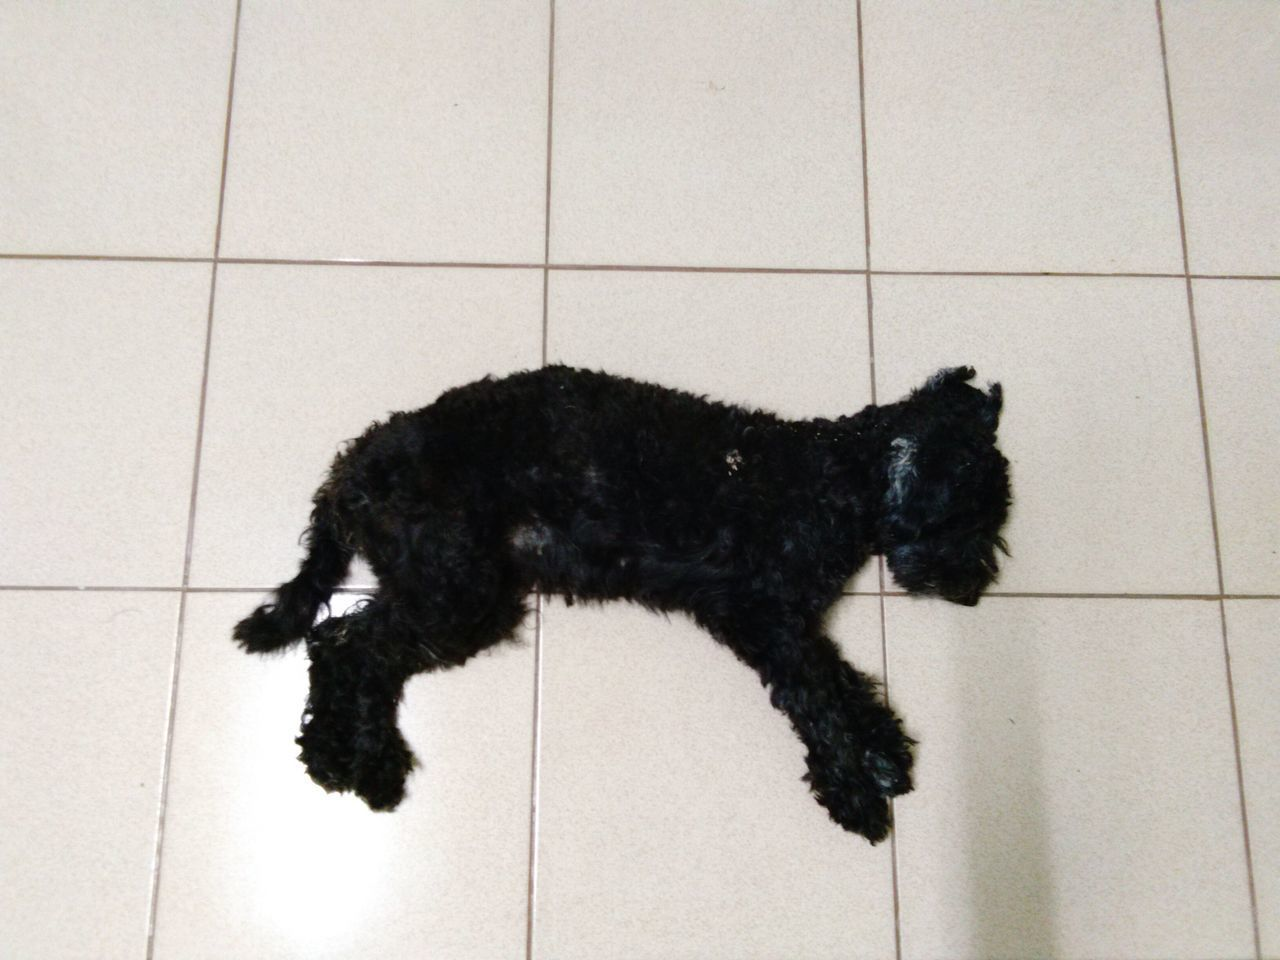 Pets One Animal Domestic Animals Black Color Mammal Dog Animal Domestic Cat Animal Themes Tiled Floor Cute Indoors  No People Feline Full Length Day